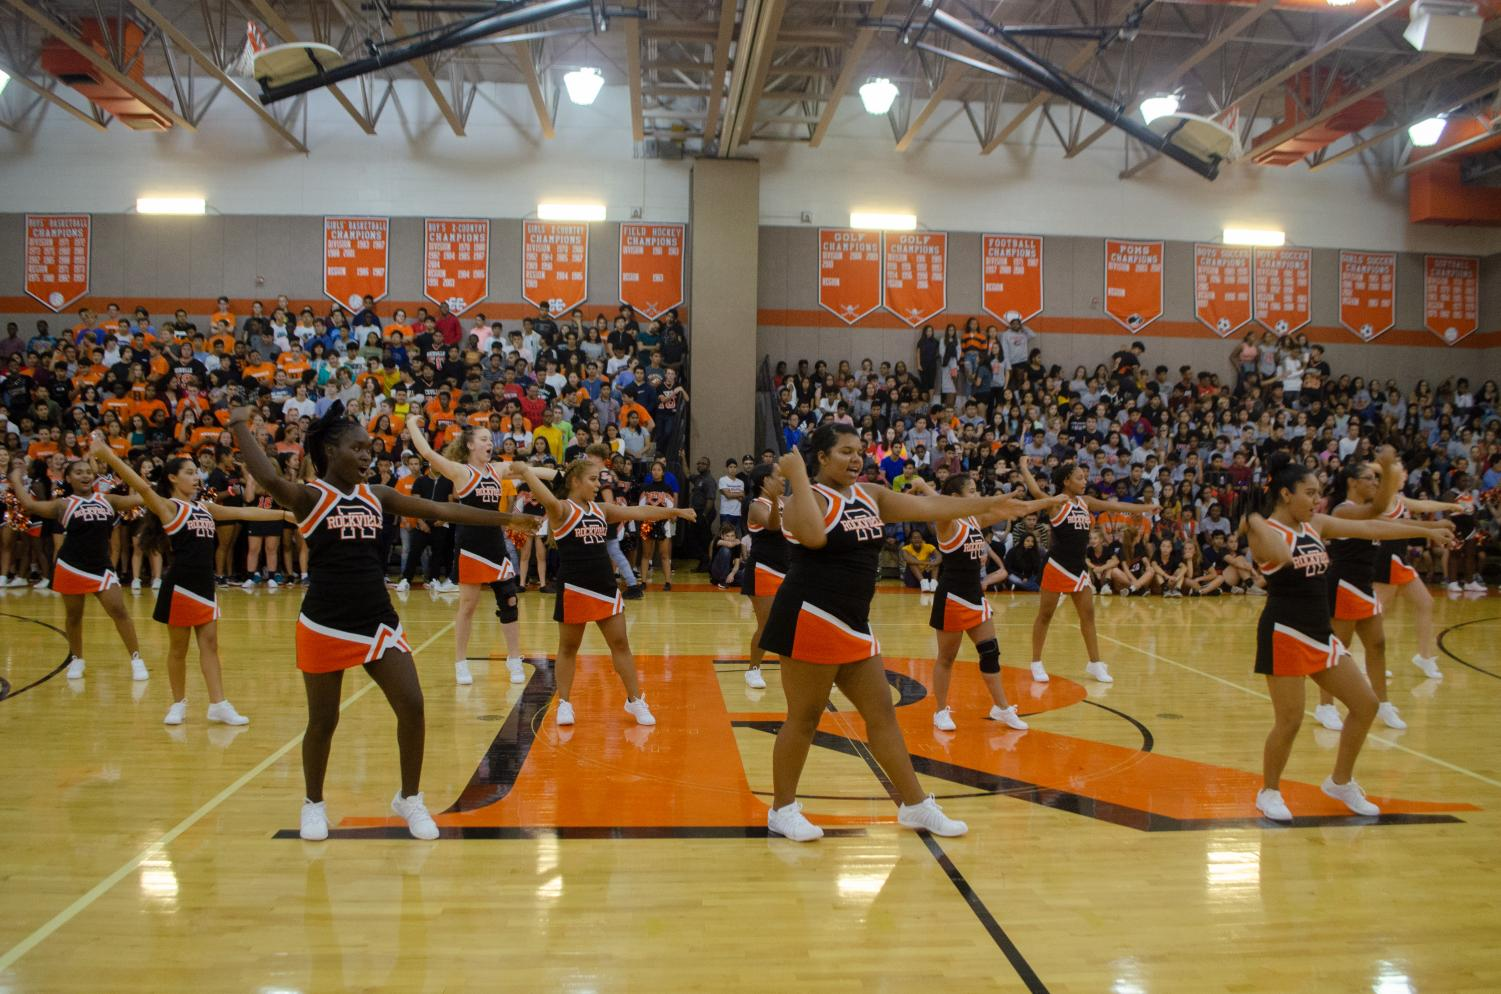 Cheer+performing+their+new+routine+at+the+fall+pep+rally.